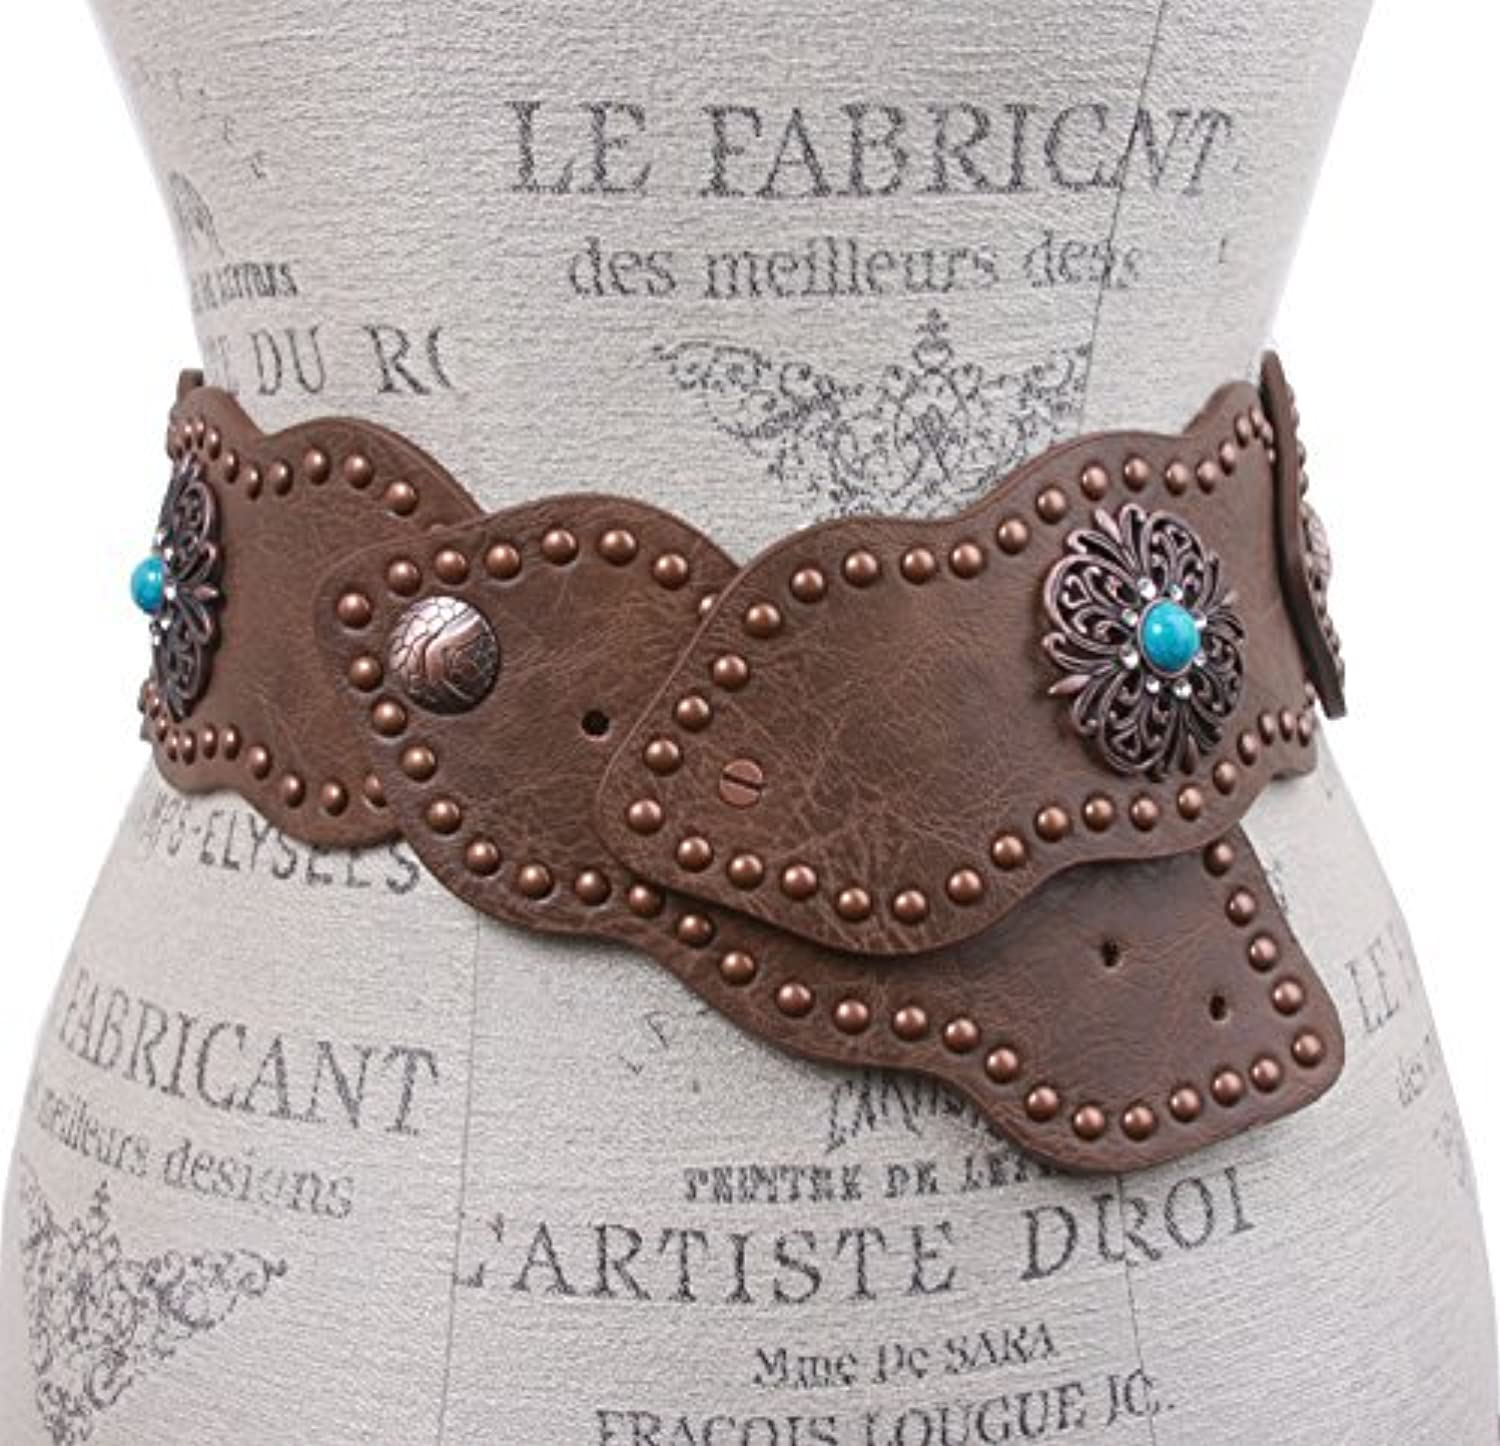 3  (75 mm) Wide Link Turquoise Studded Leather Belt, Brown   m l 37 41